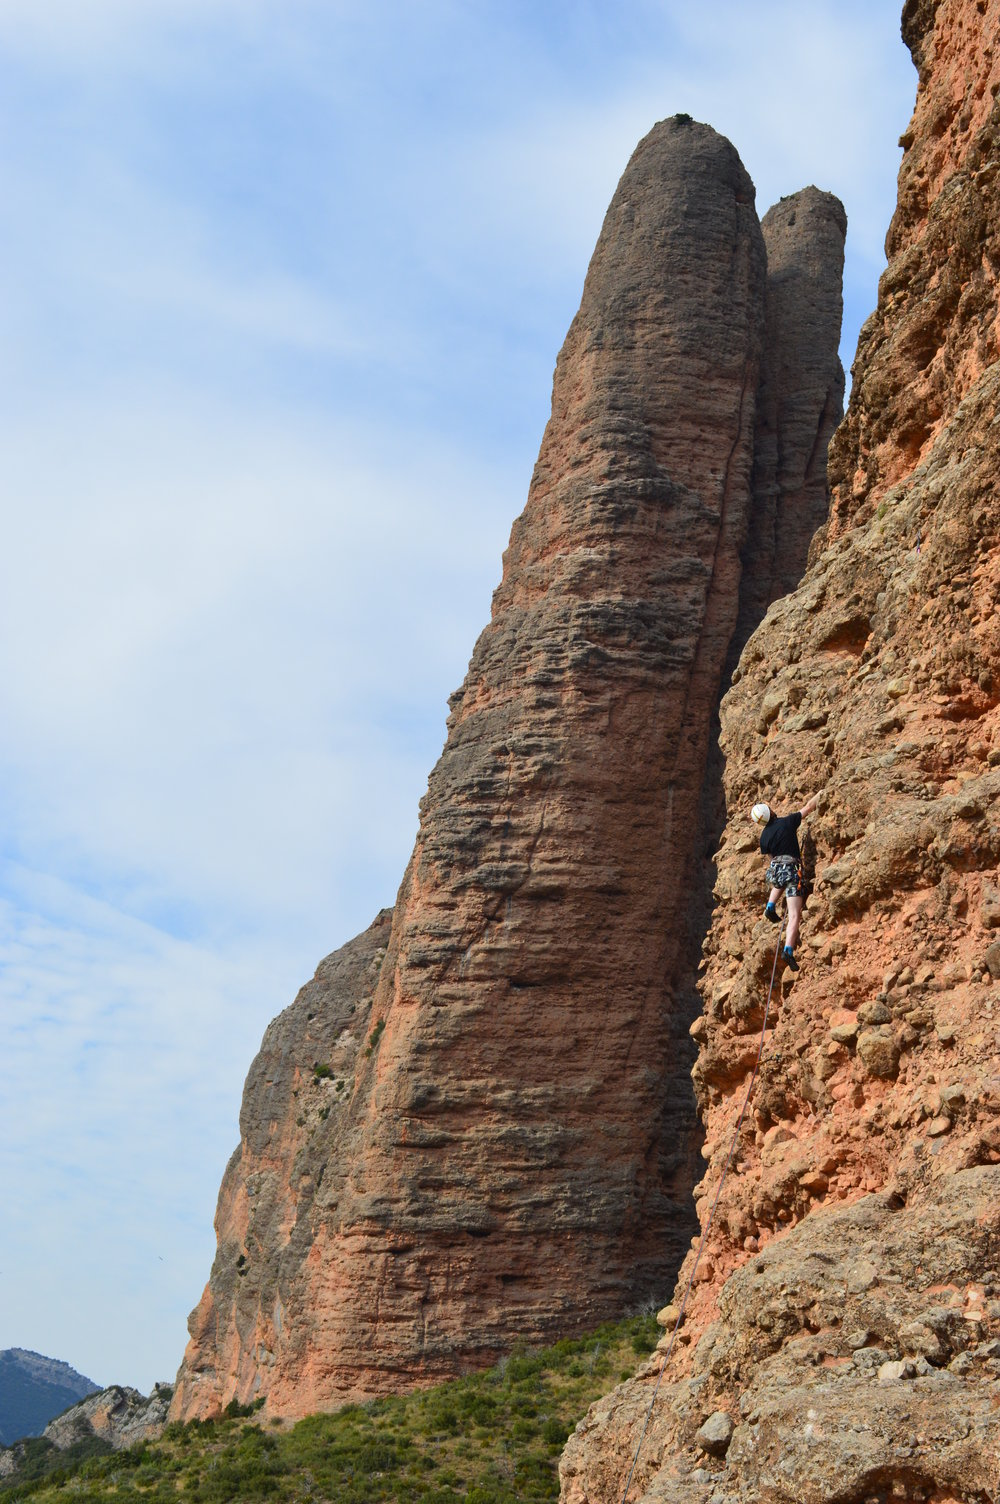 Climbing in Riglos. Image credit: David Comer